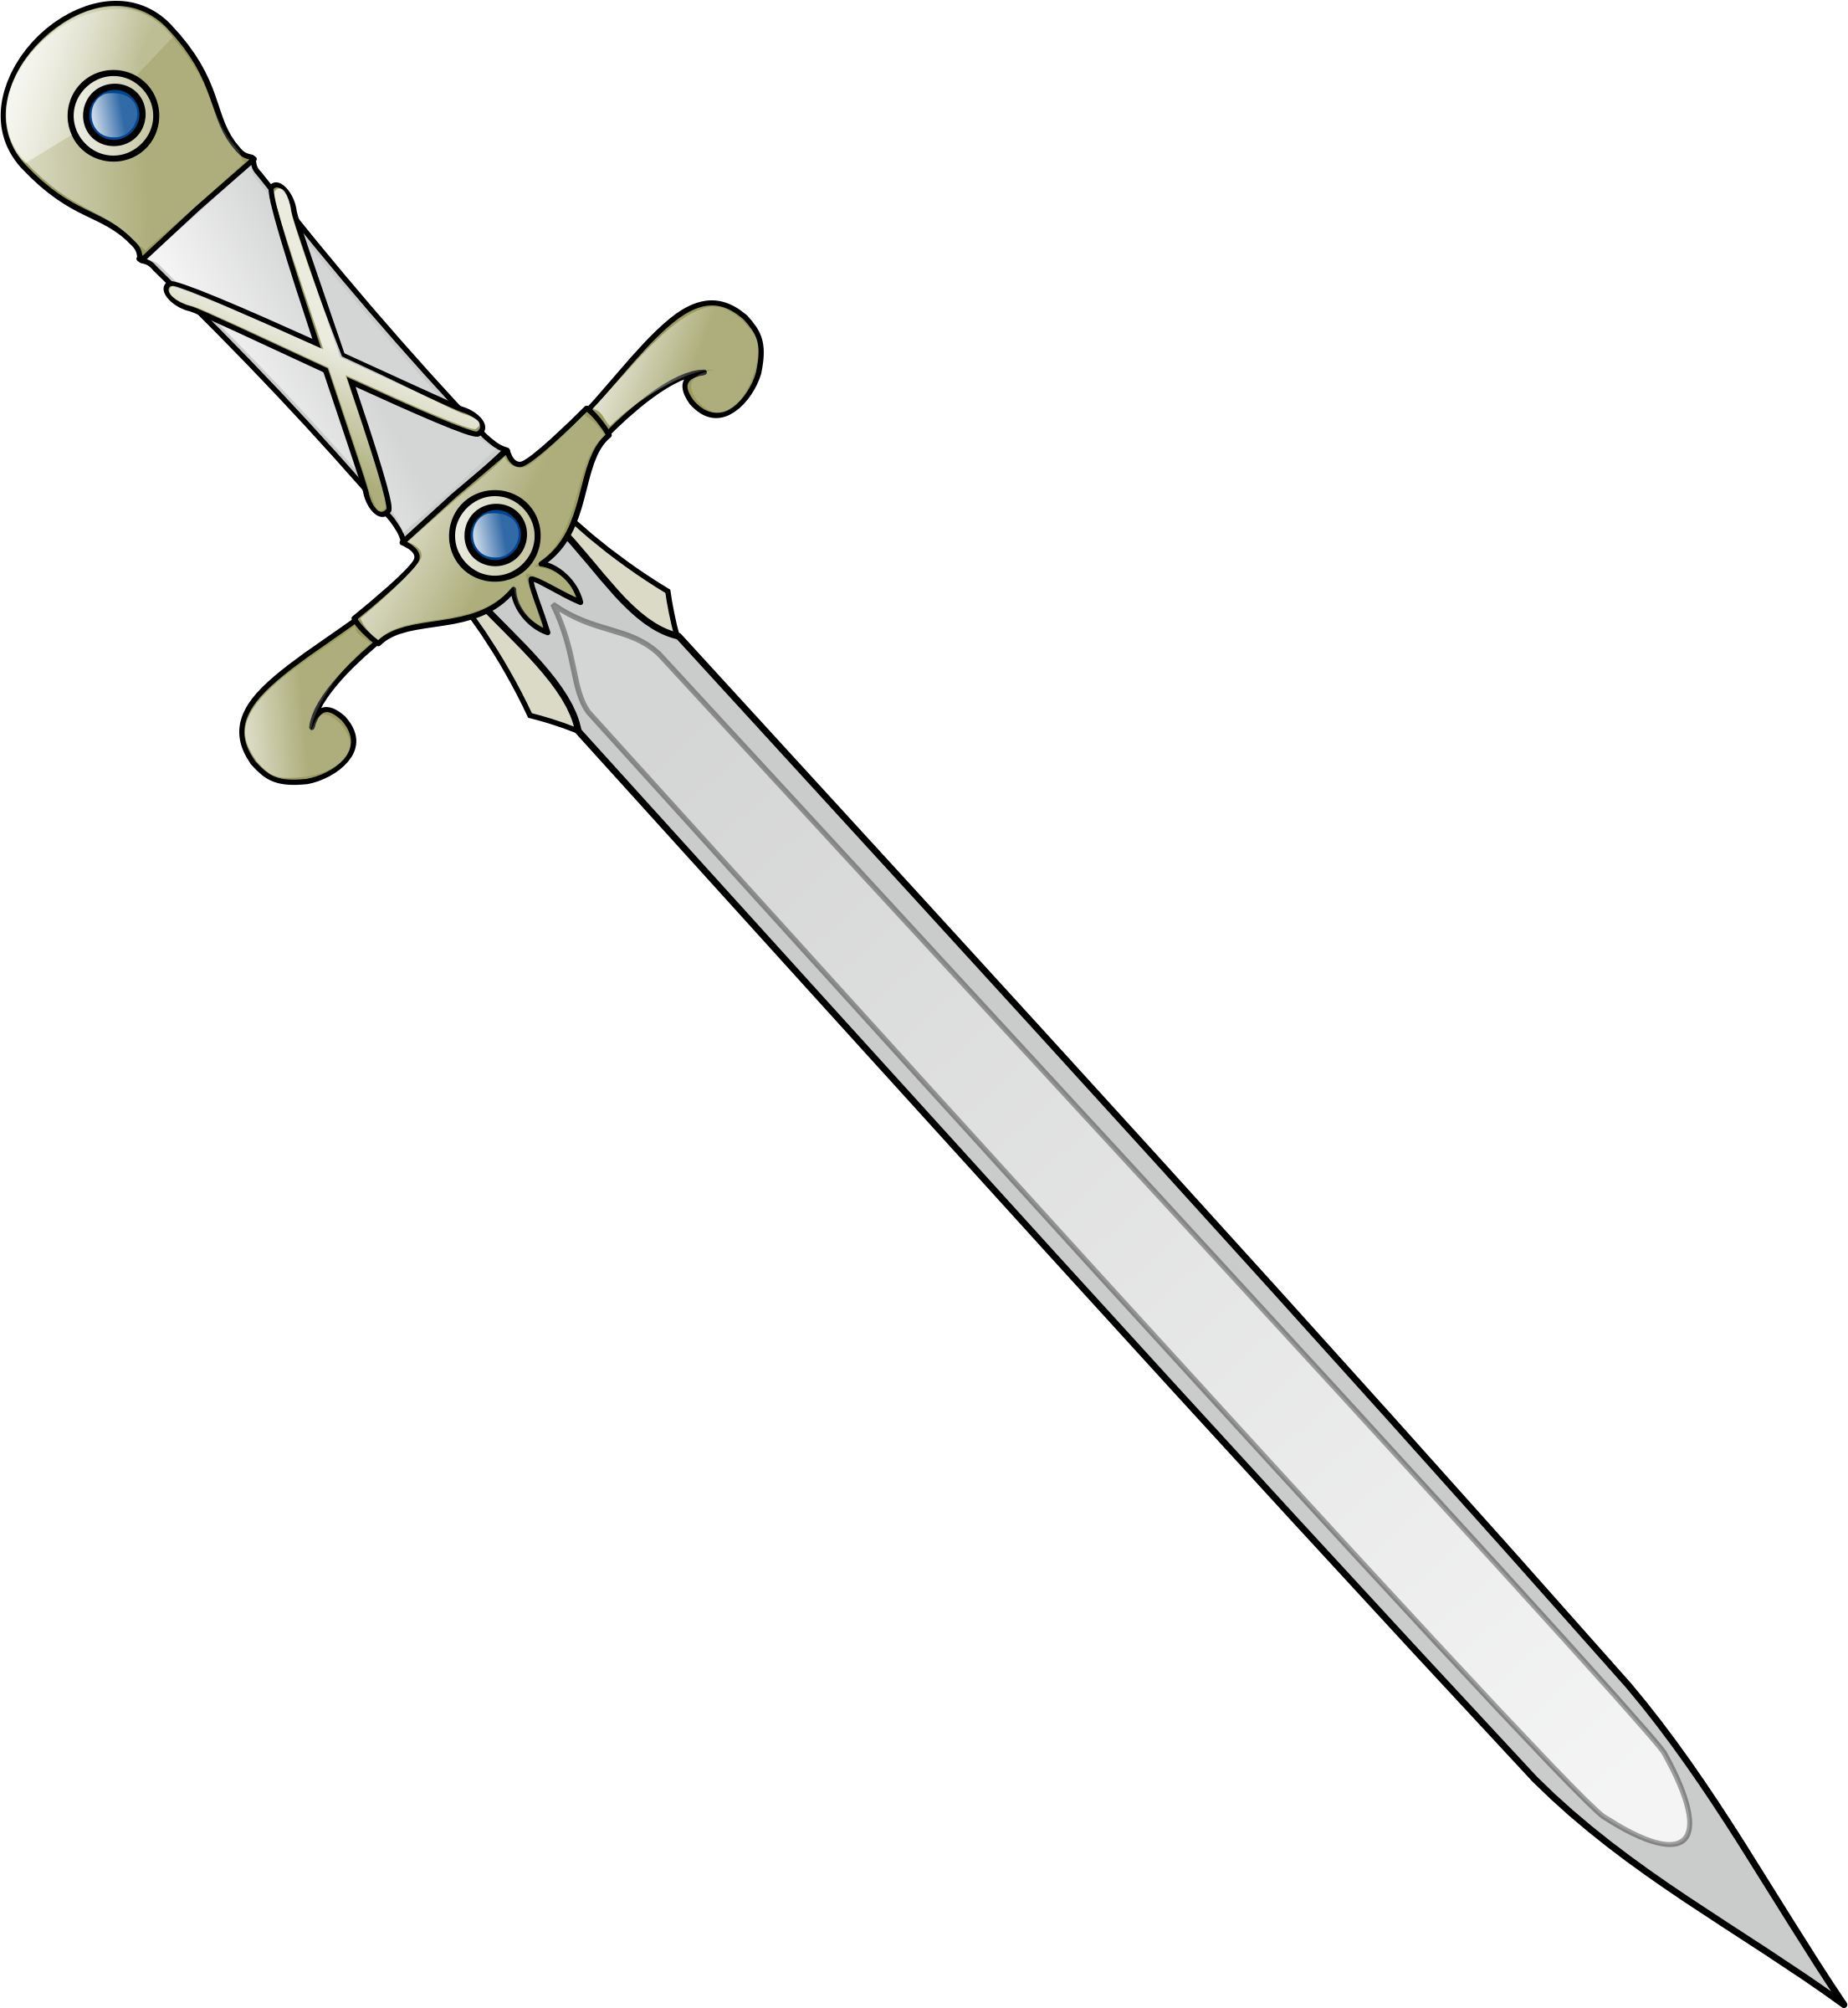 Sword by oksmith